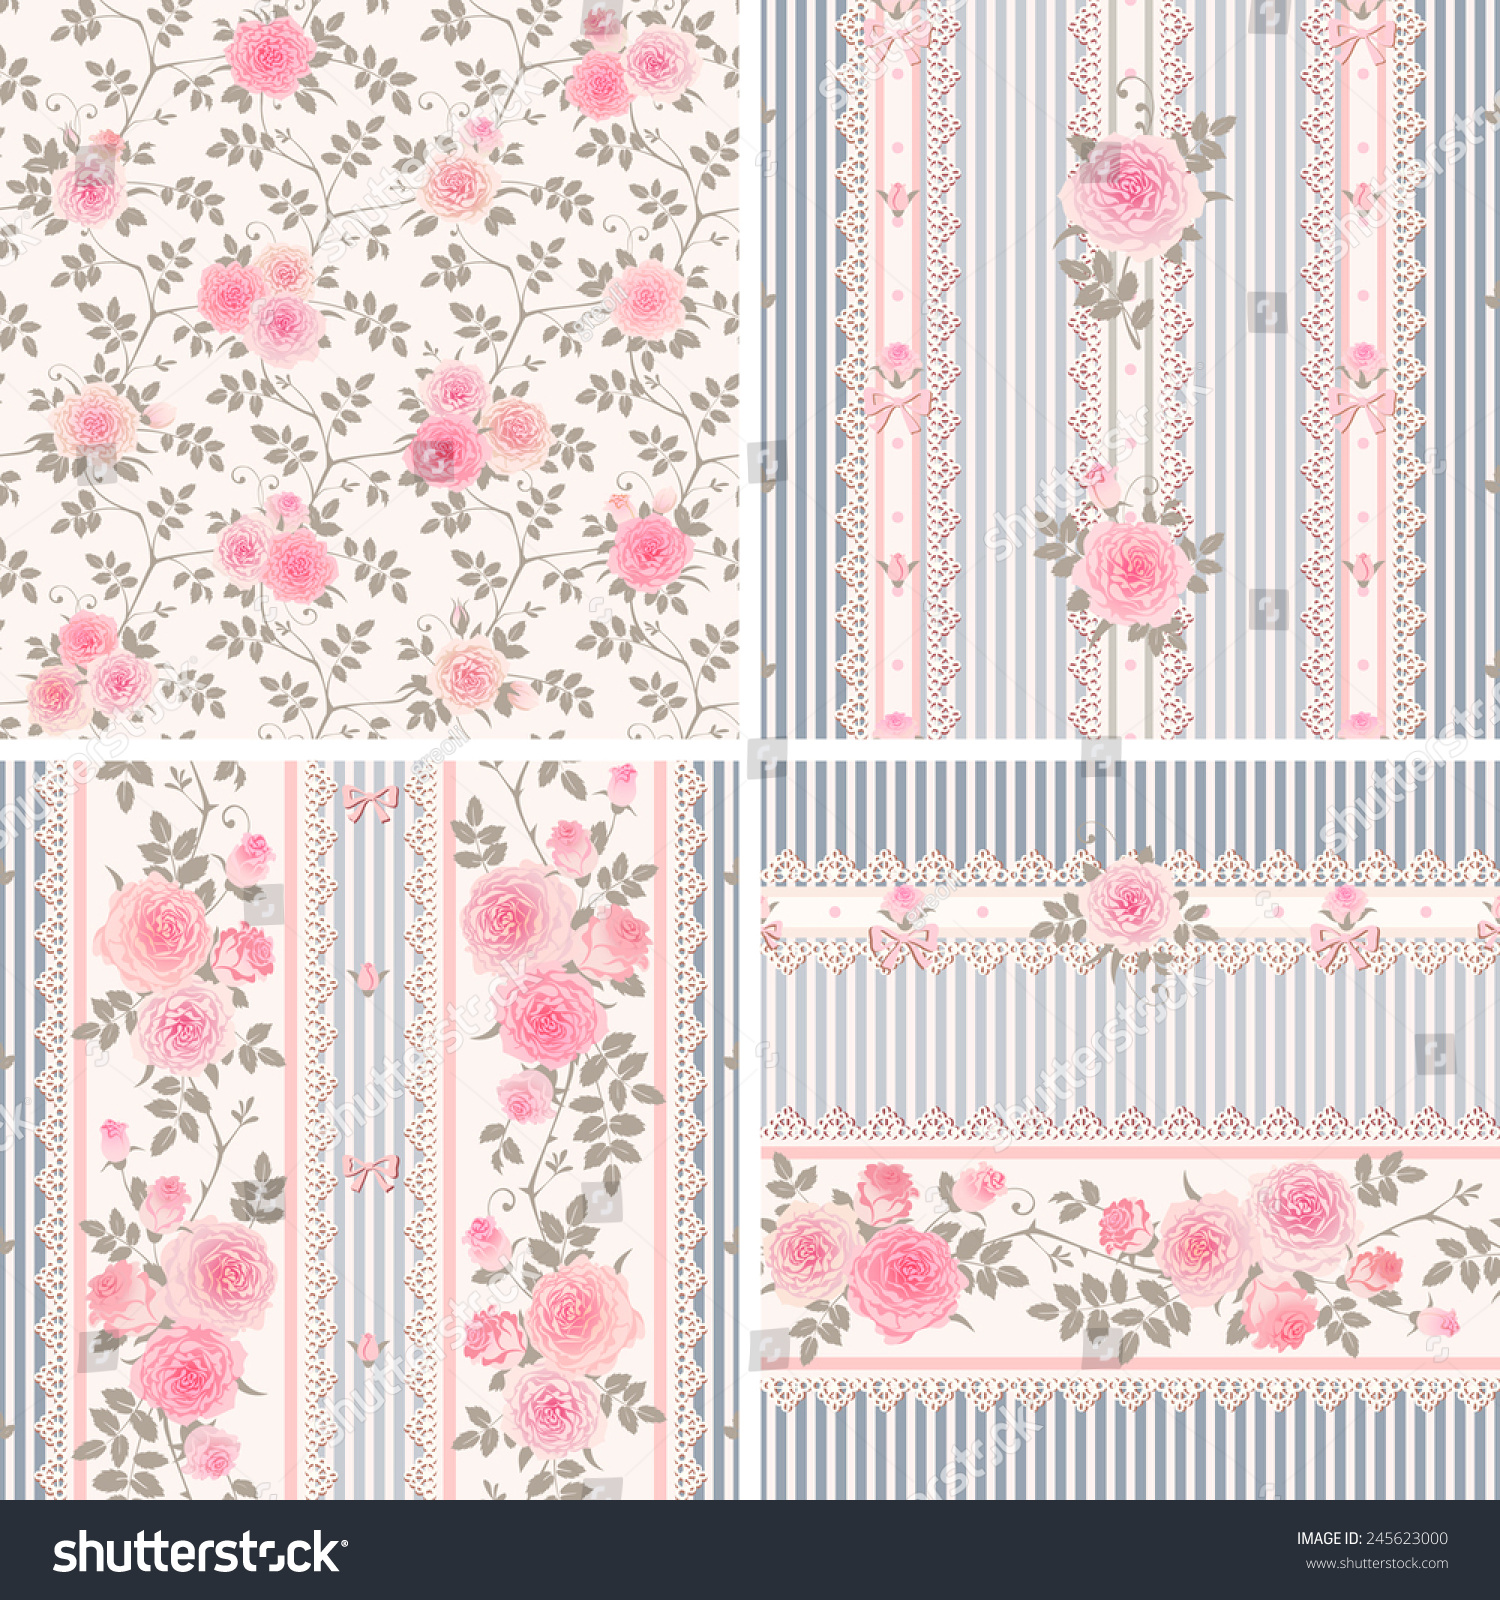 Seamless Floral Backgrounds And Borders Set Of Shabby Chic Style Patterns With Pink Roses